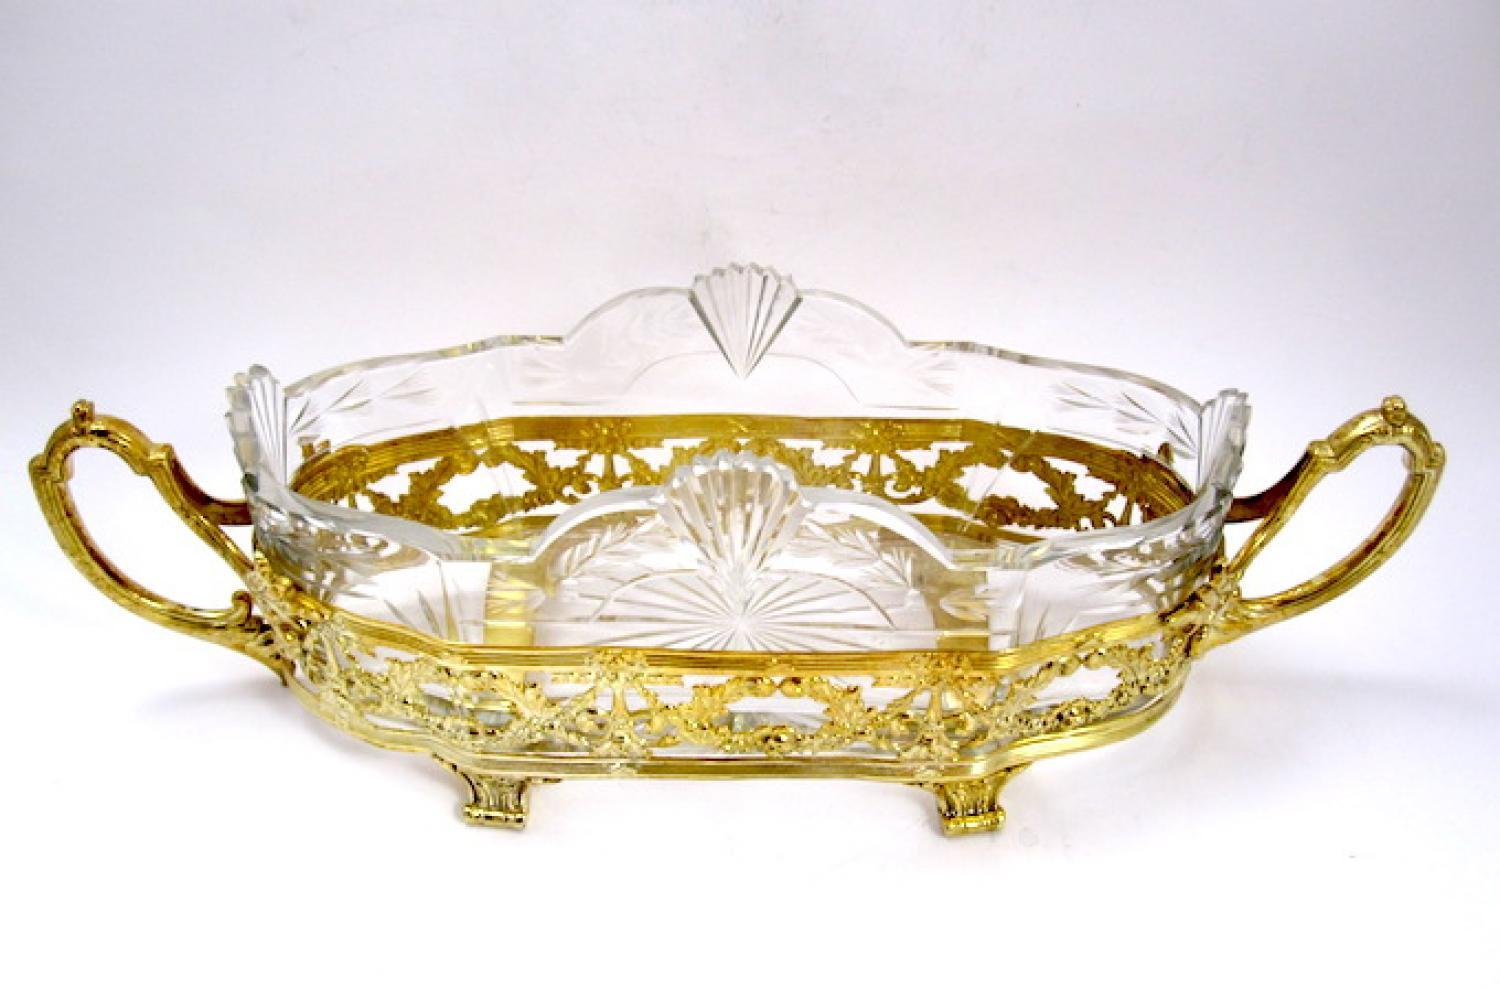 Napoleon iii dore bronze jardiniere in french crystal for Jardiniere napoleon 3